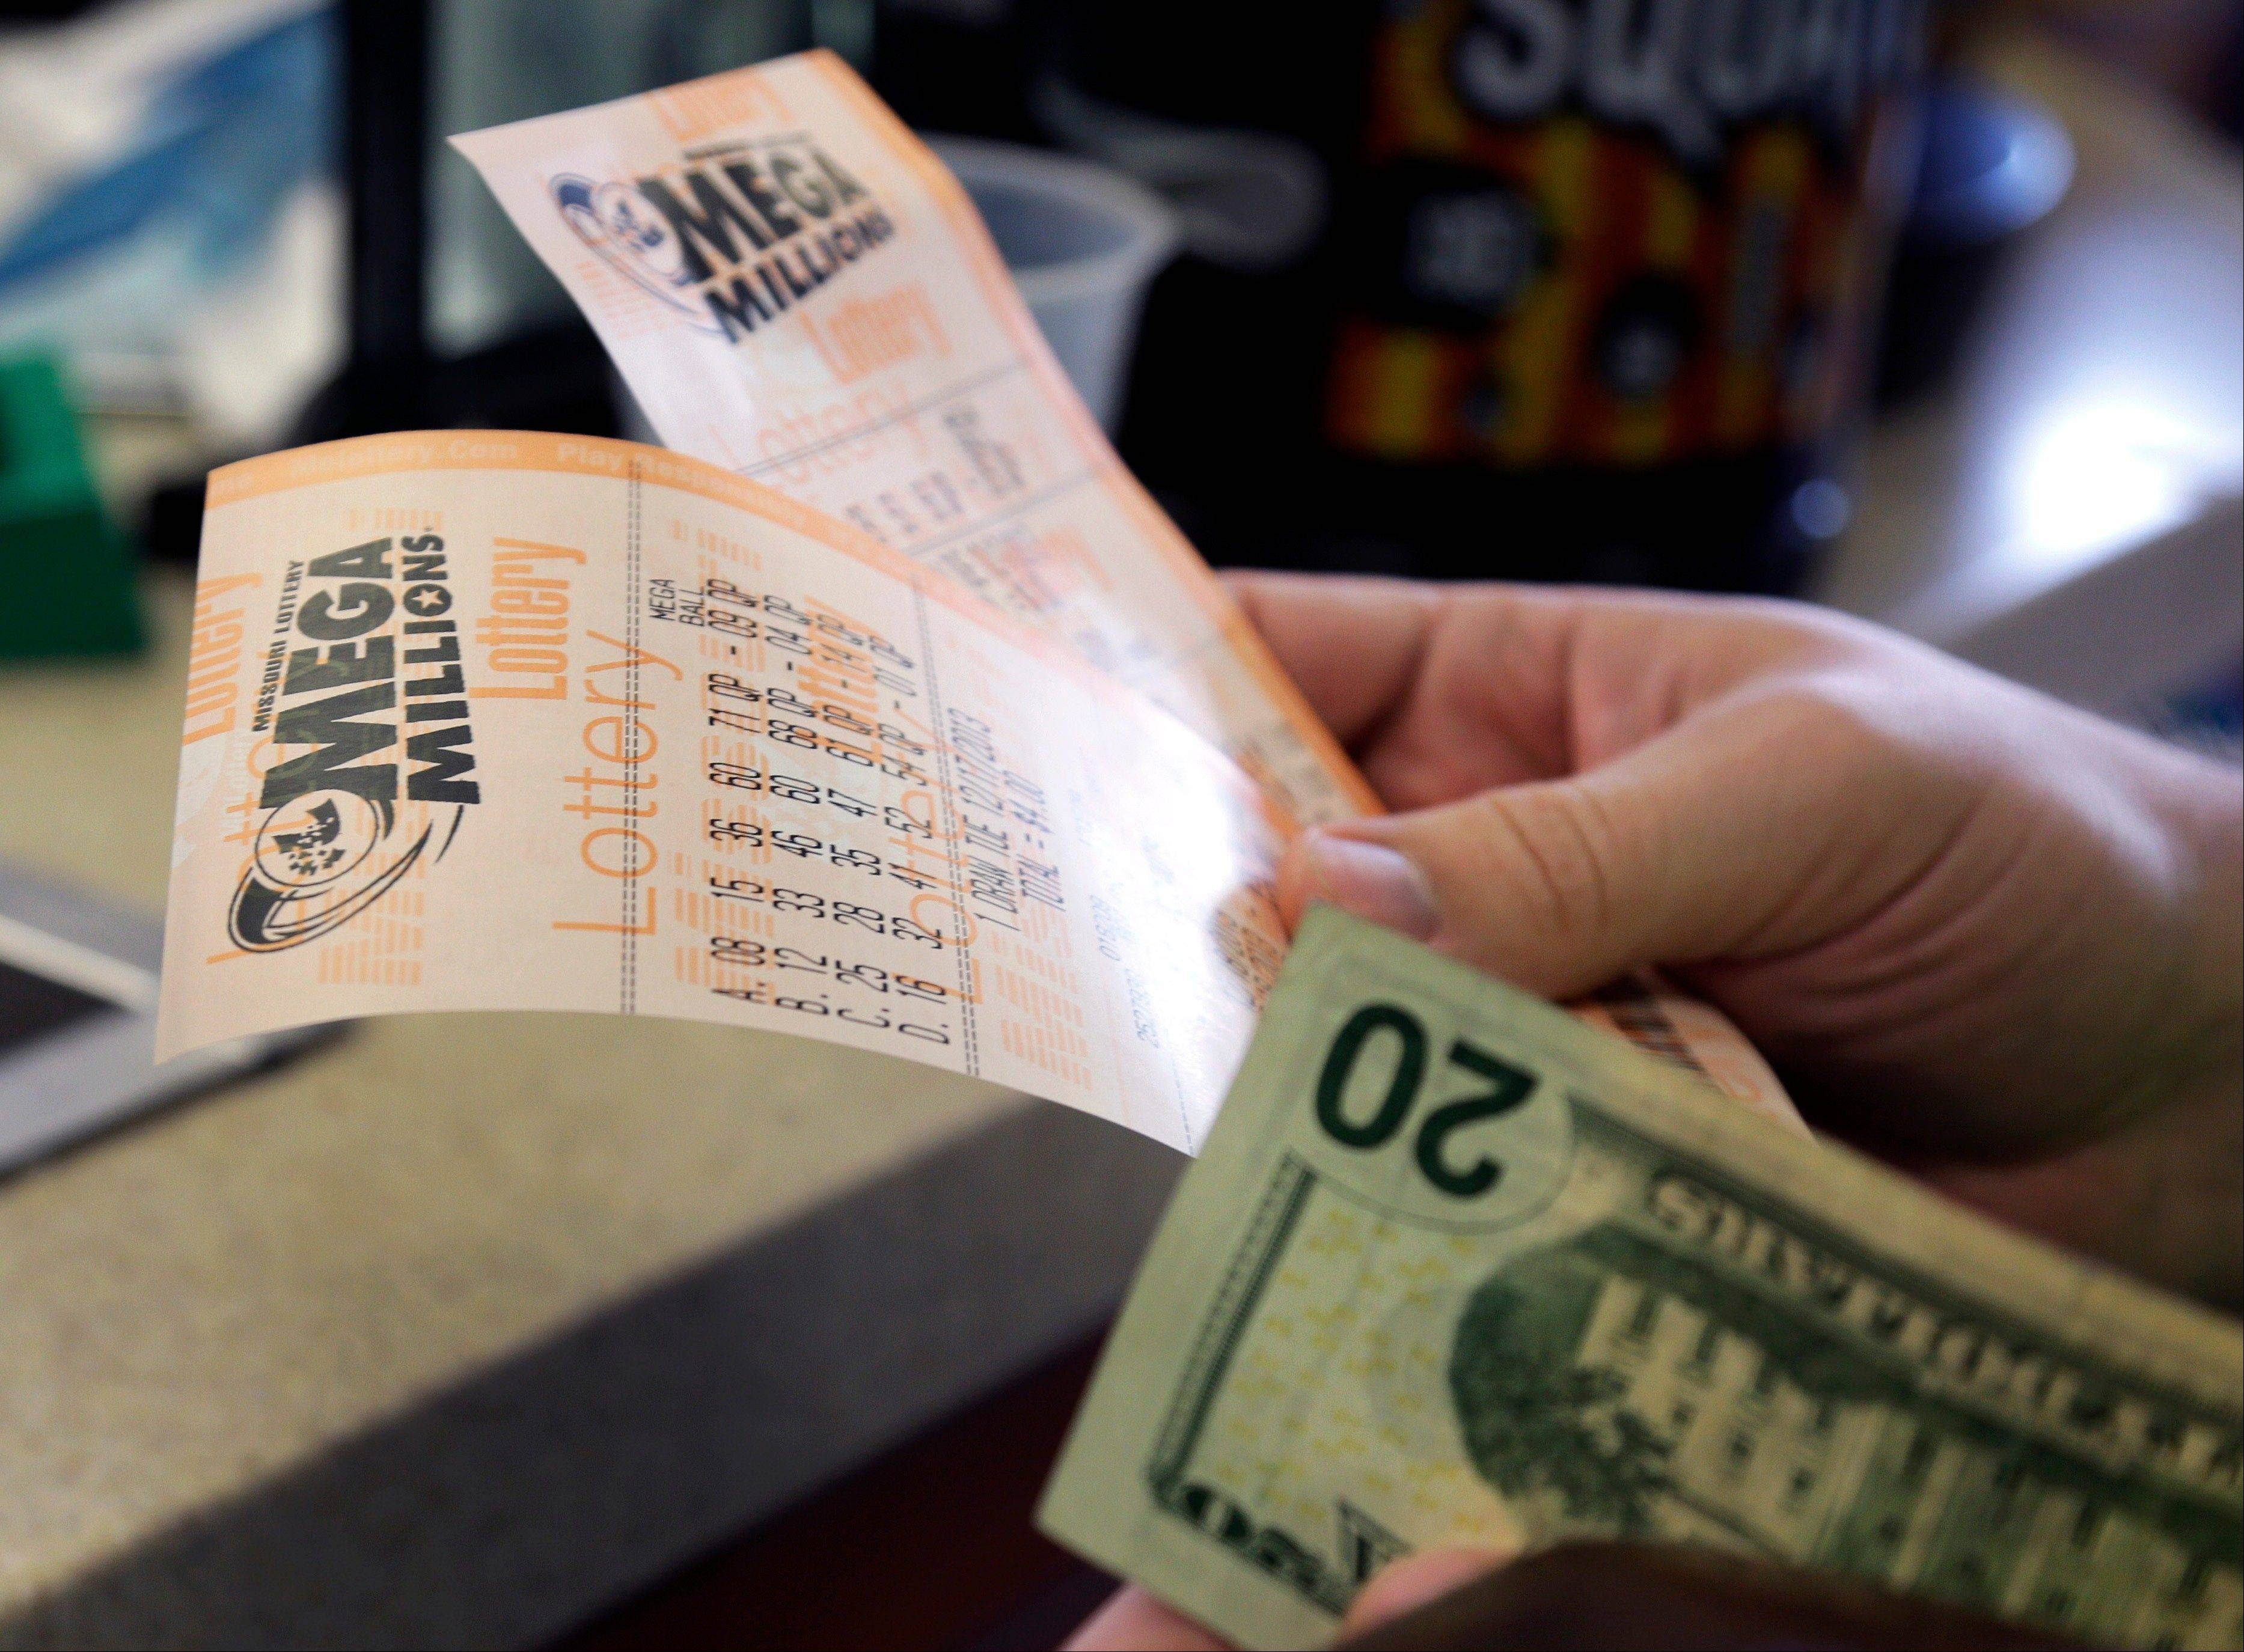 The Mega Millions jackpot soared to $586 million on Monday amid a frenzy of ticket purchases, a jump that pushed the prize closer to the $656 million U.S. record set last year.